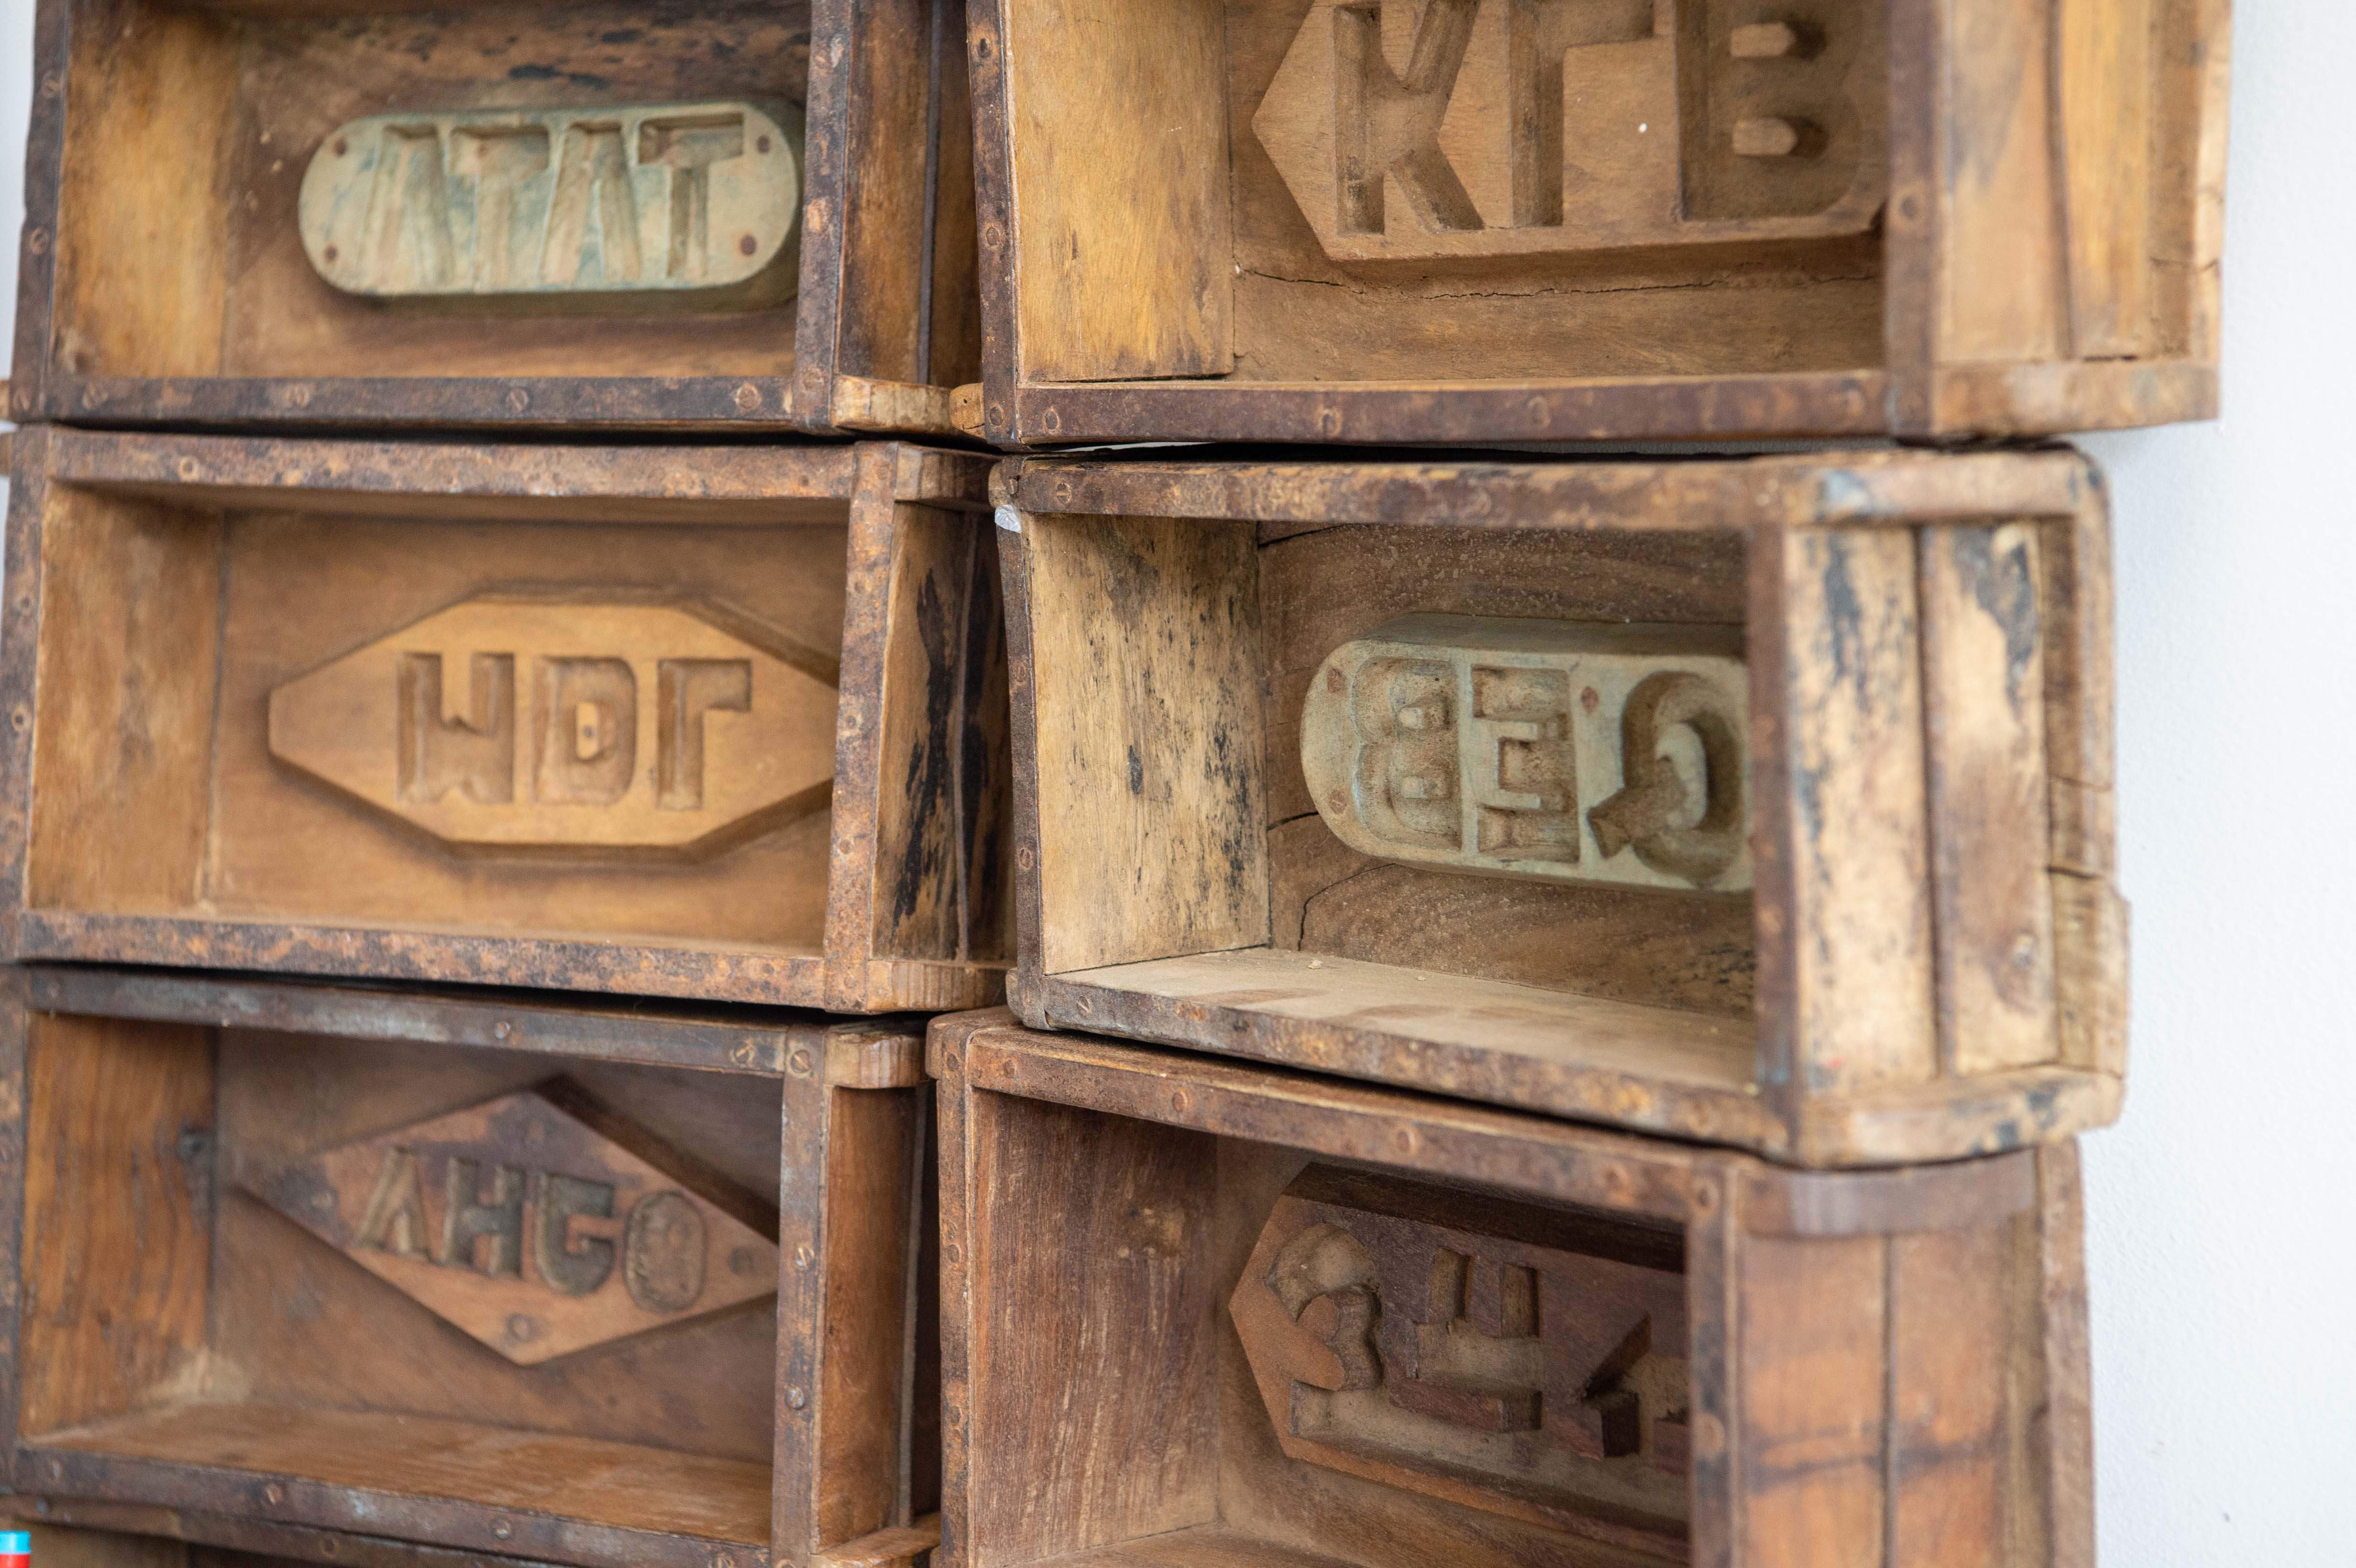 Wooden vintage brick moulds.